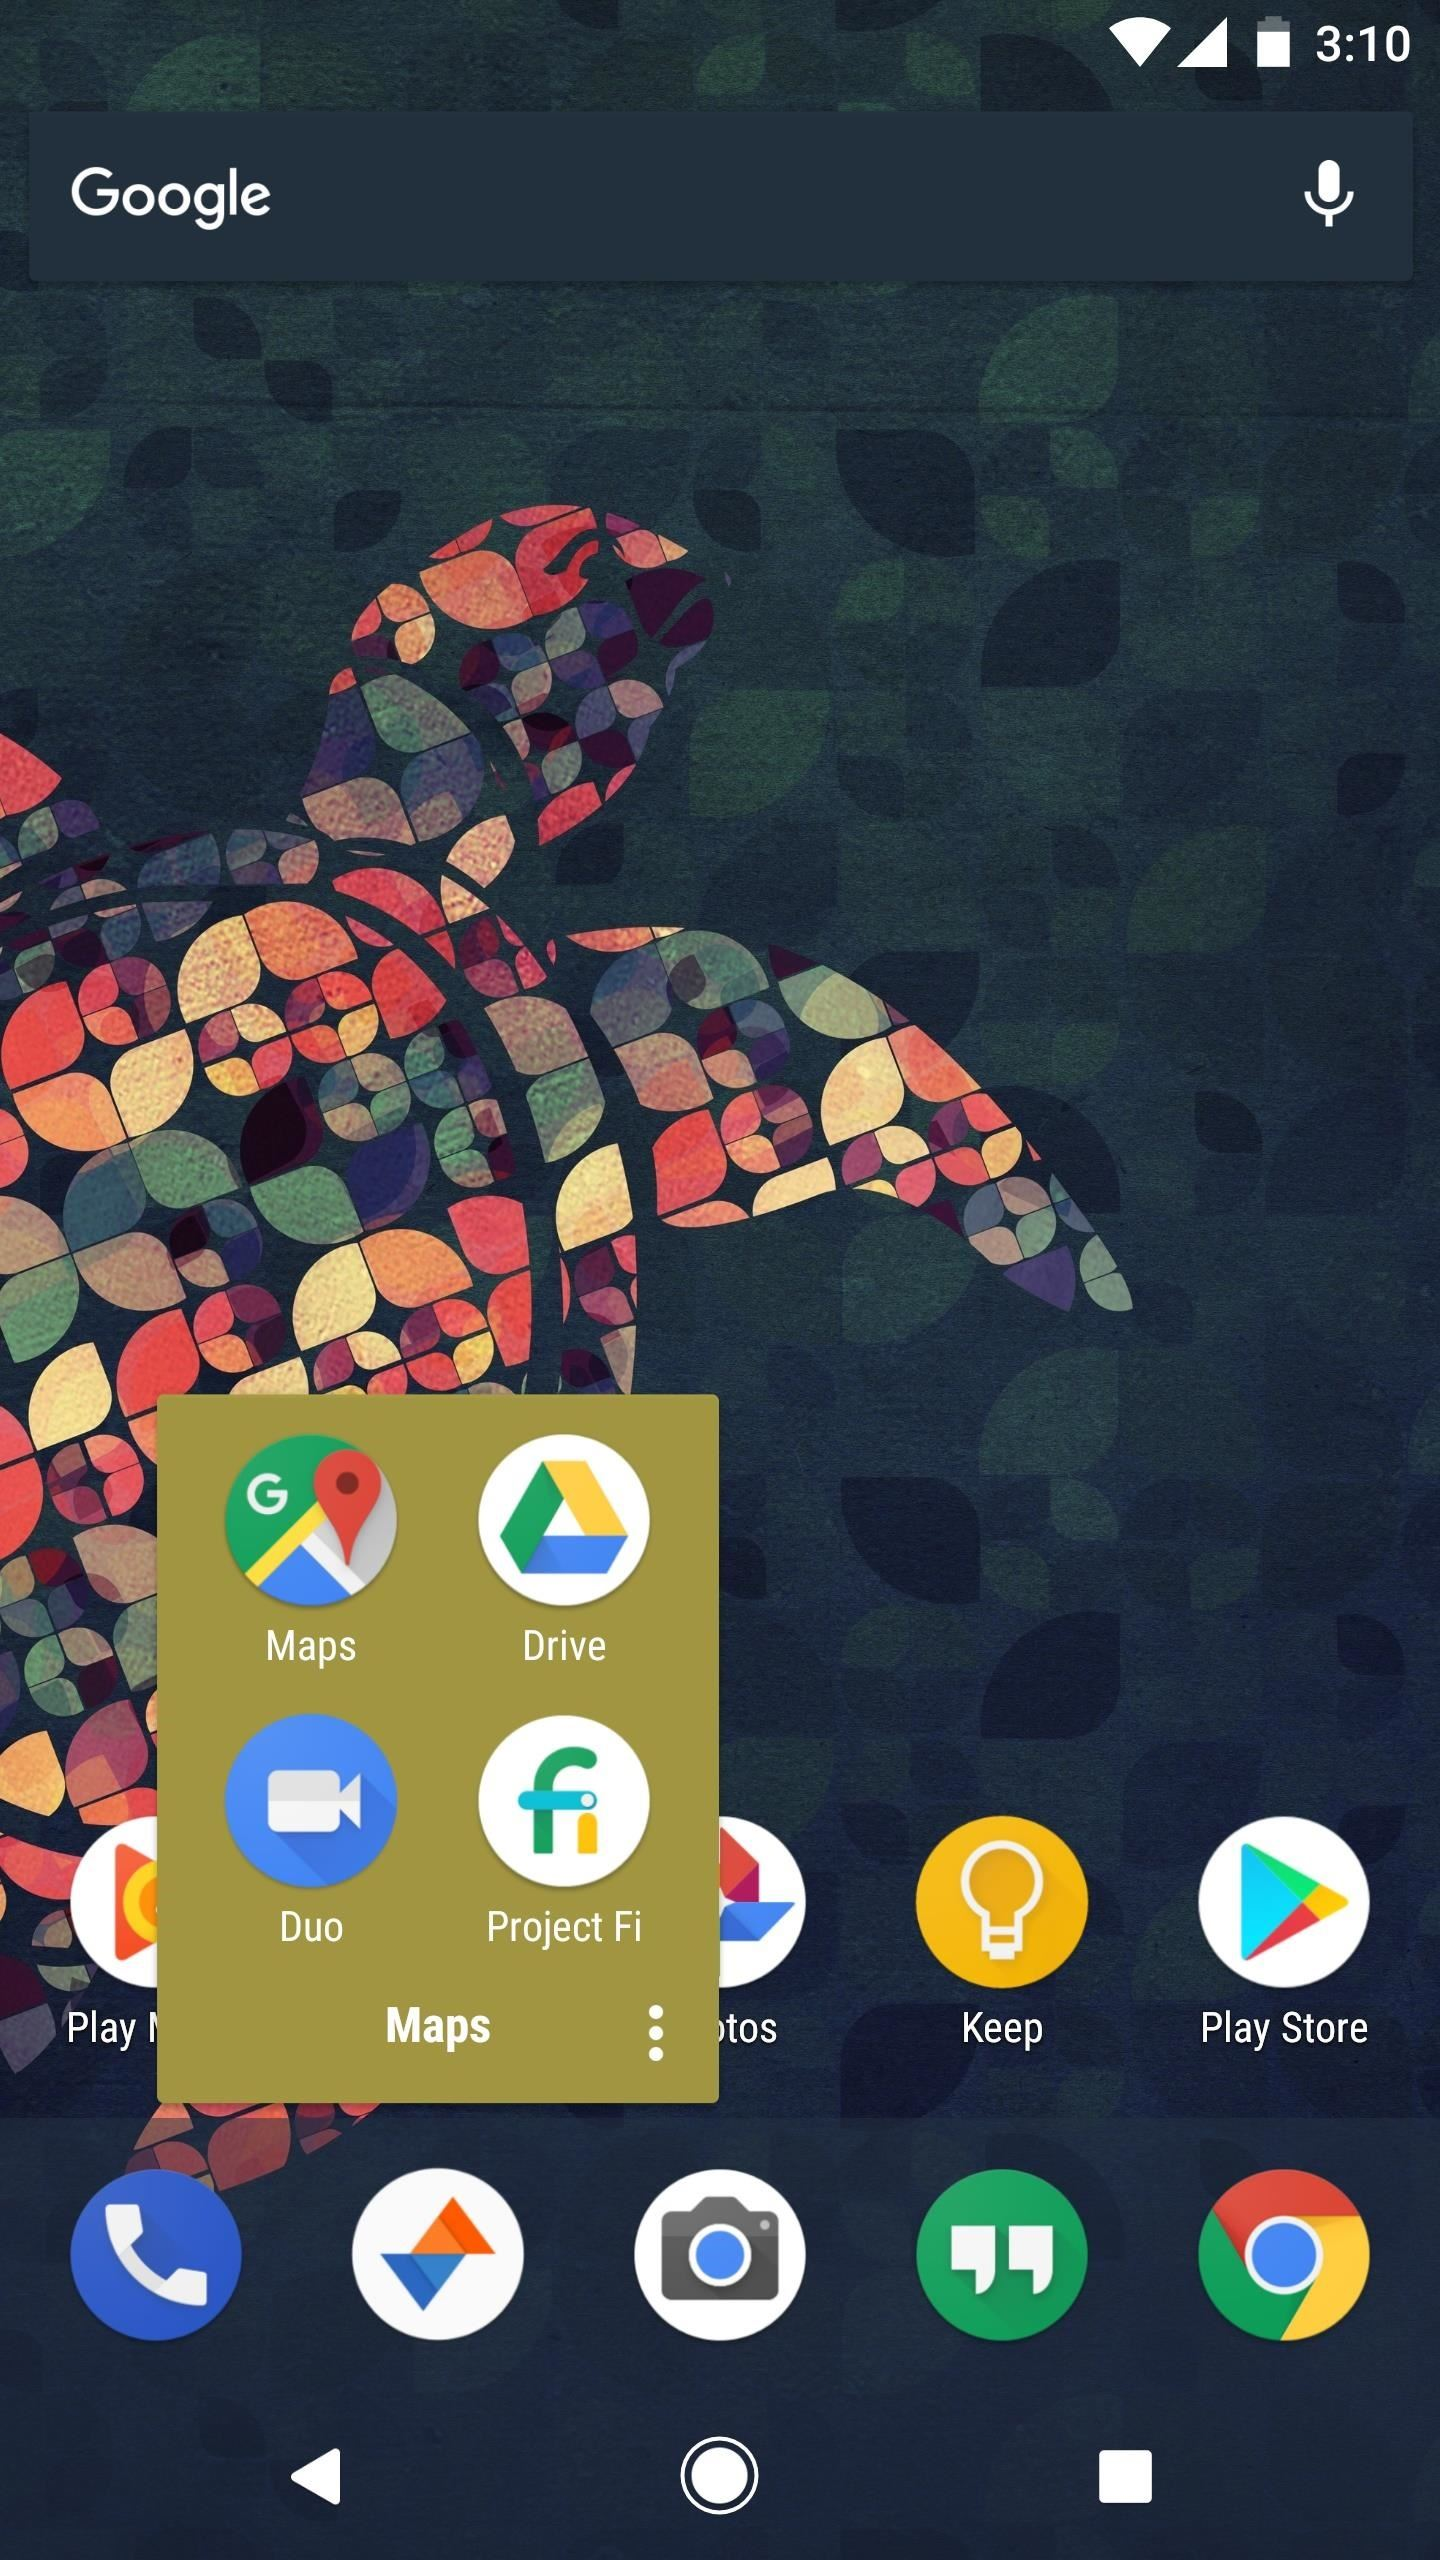 Best Android Home Screen Ideas